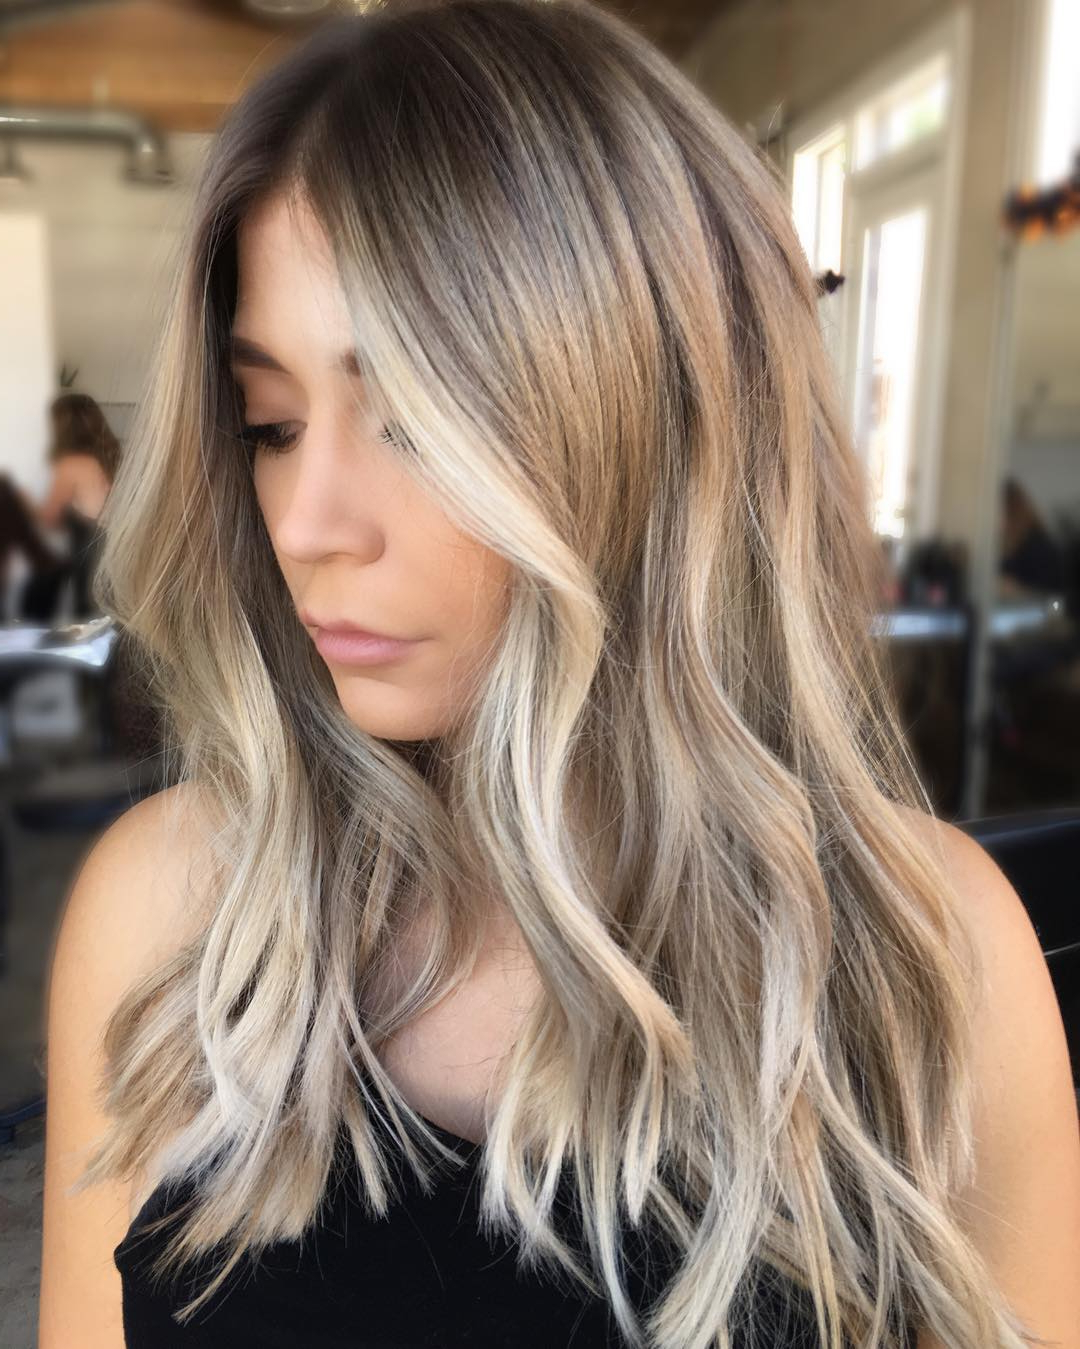 10 Ash Blonde Hairstyles For All Skin Tones 2020 With Most Recent Longer Tousled Caramel Blonde Shag Haircuts (Gallery 18 of 20)